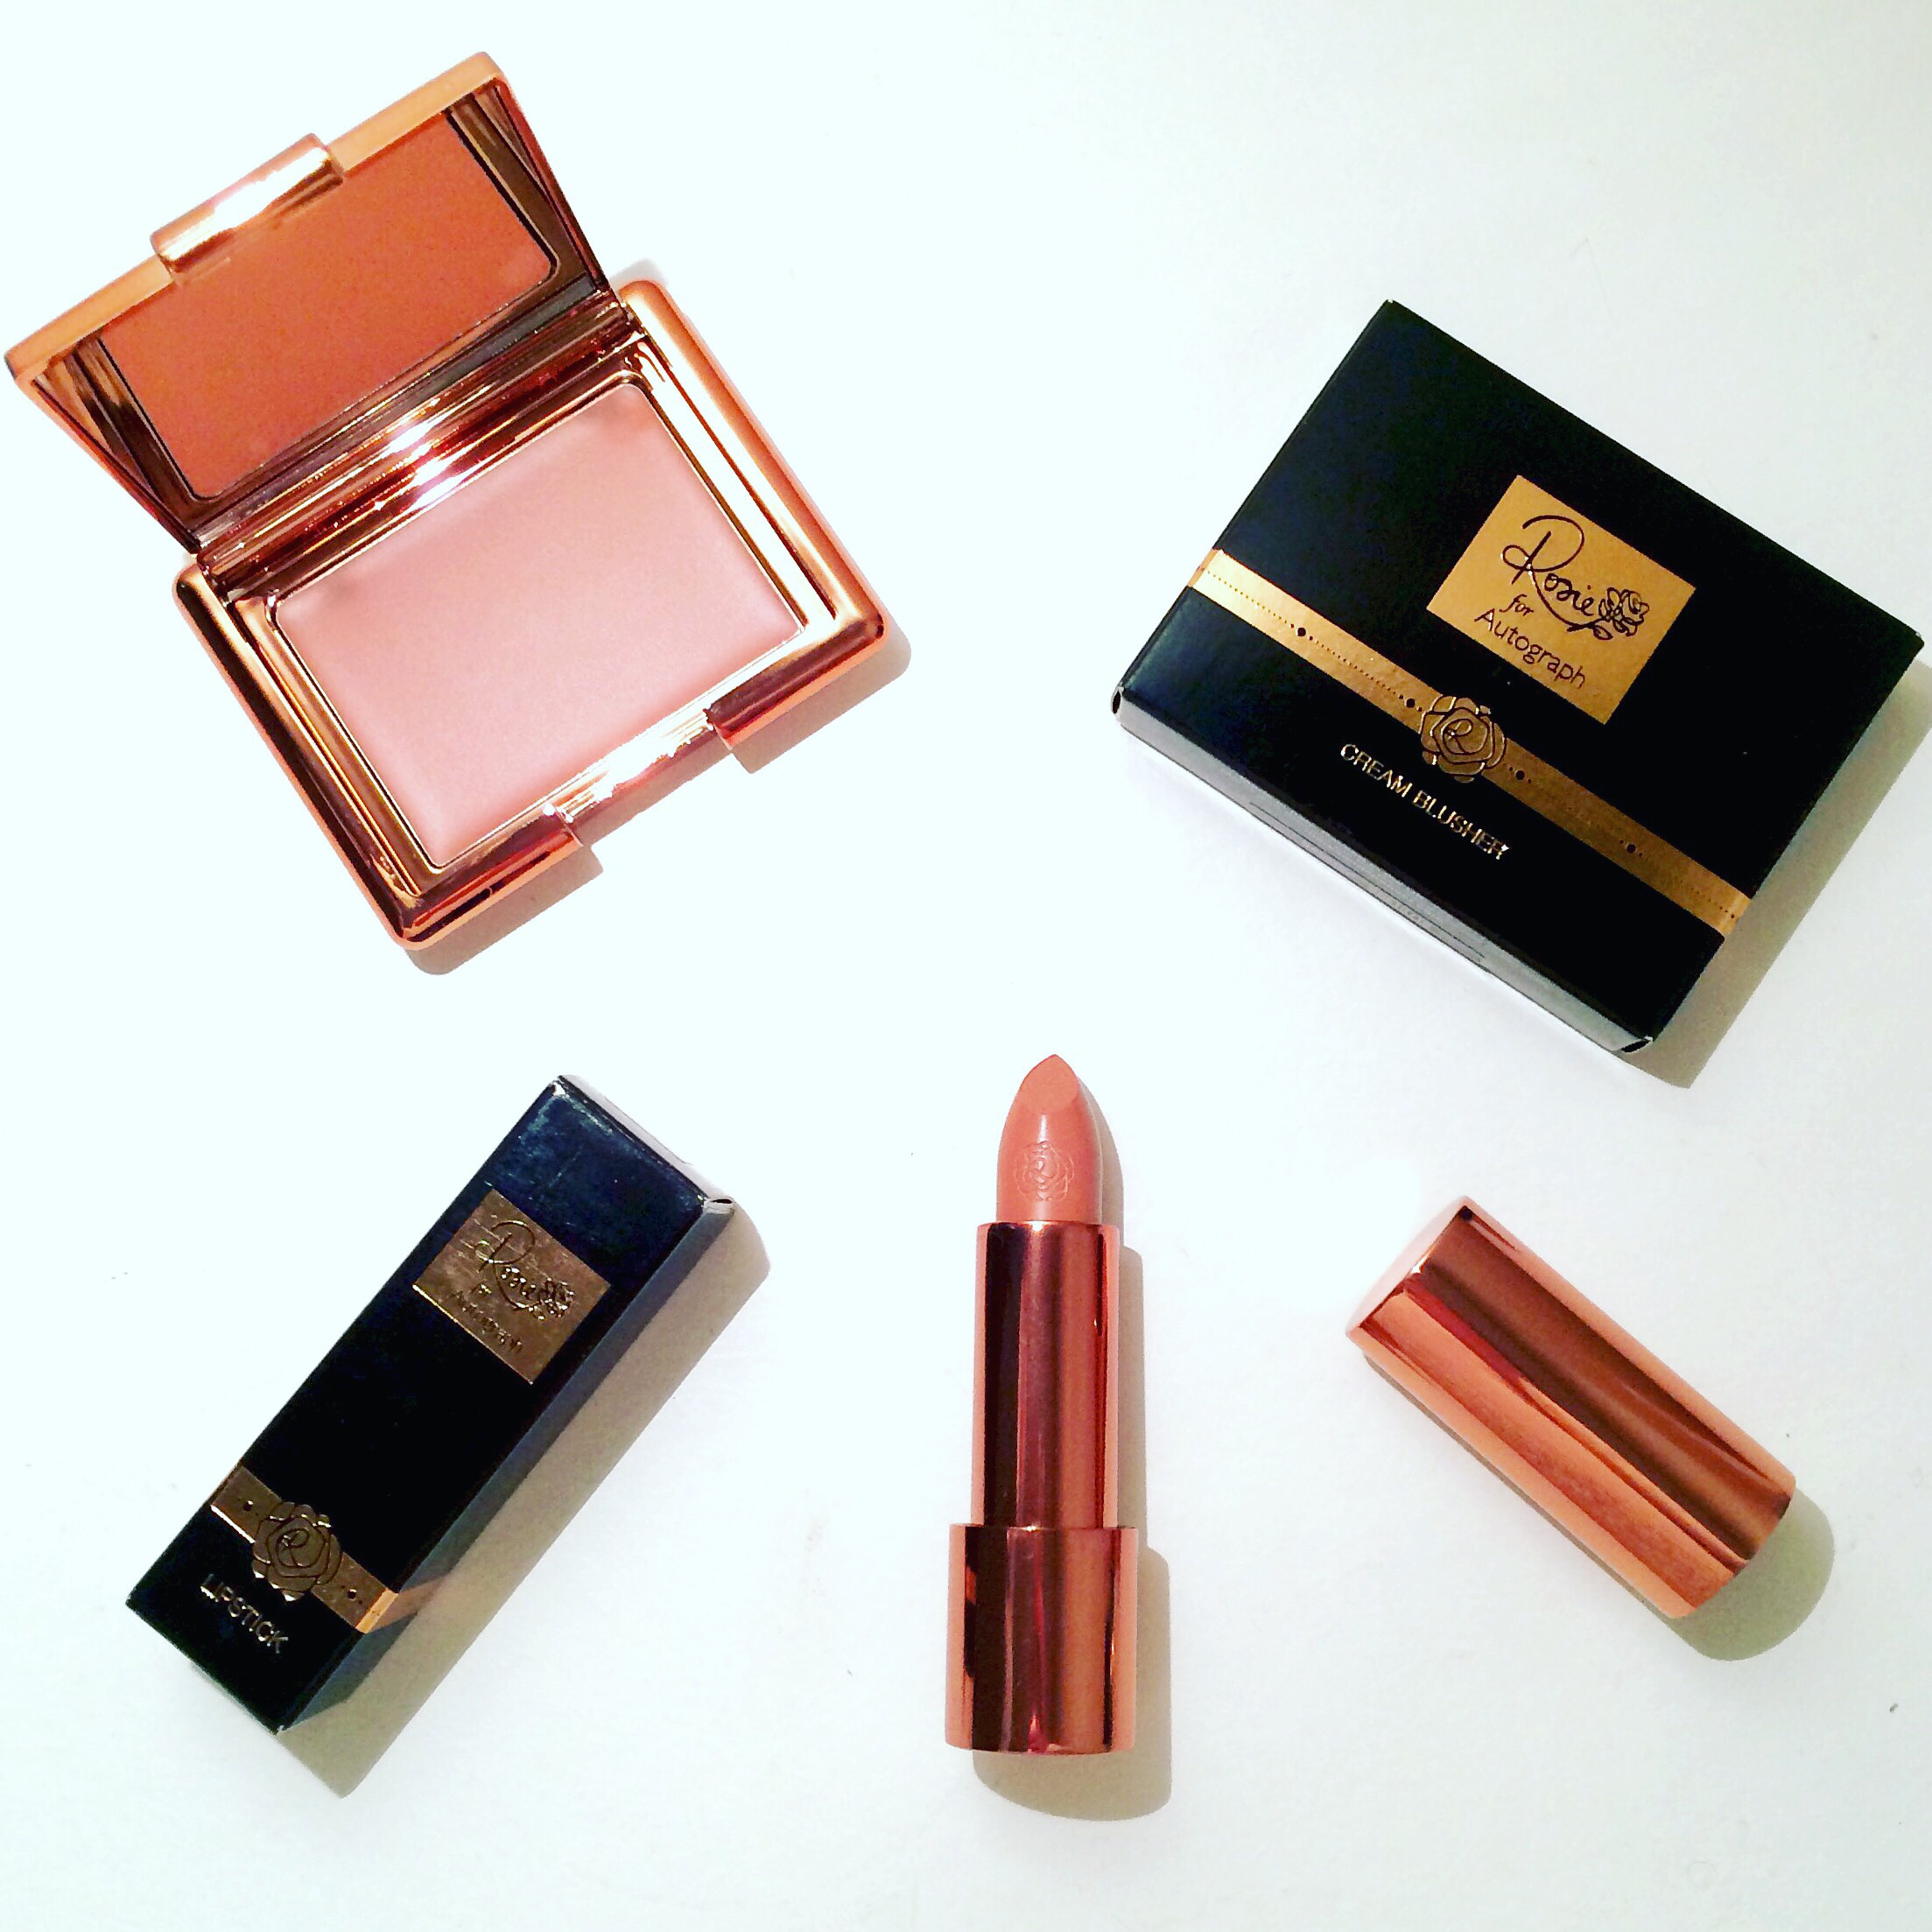 REVIEW & SWATCHES: 'Rosie for Autograph' Makeup Collection